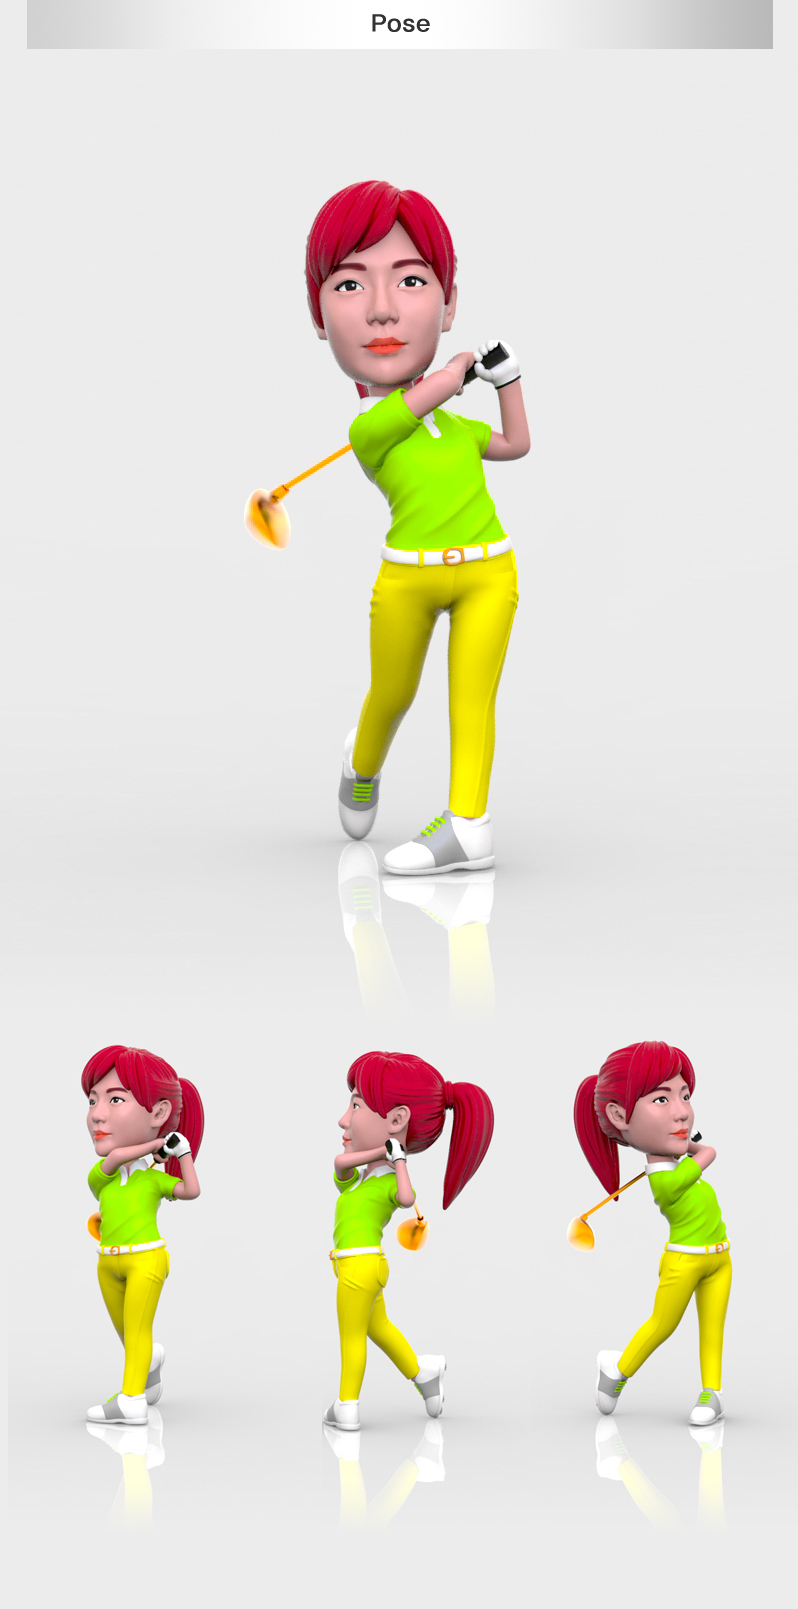 golf_w_pants_pose02